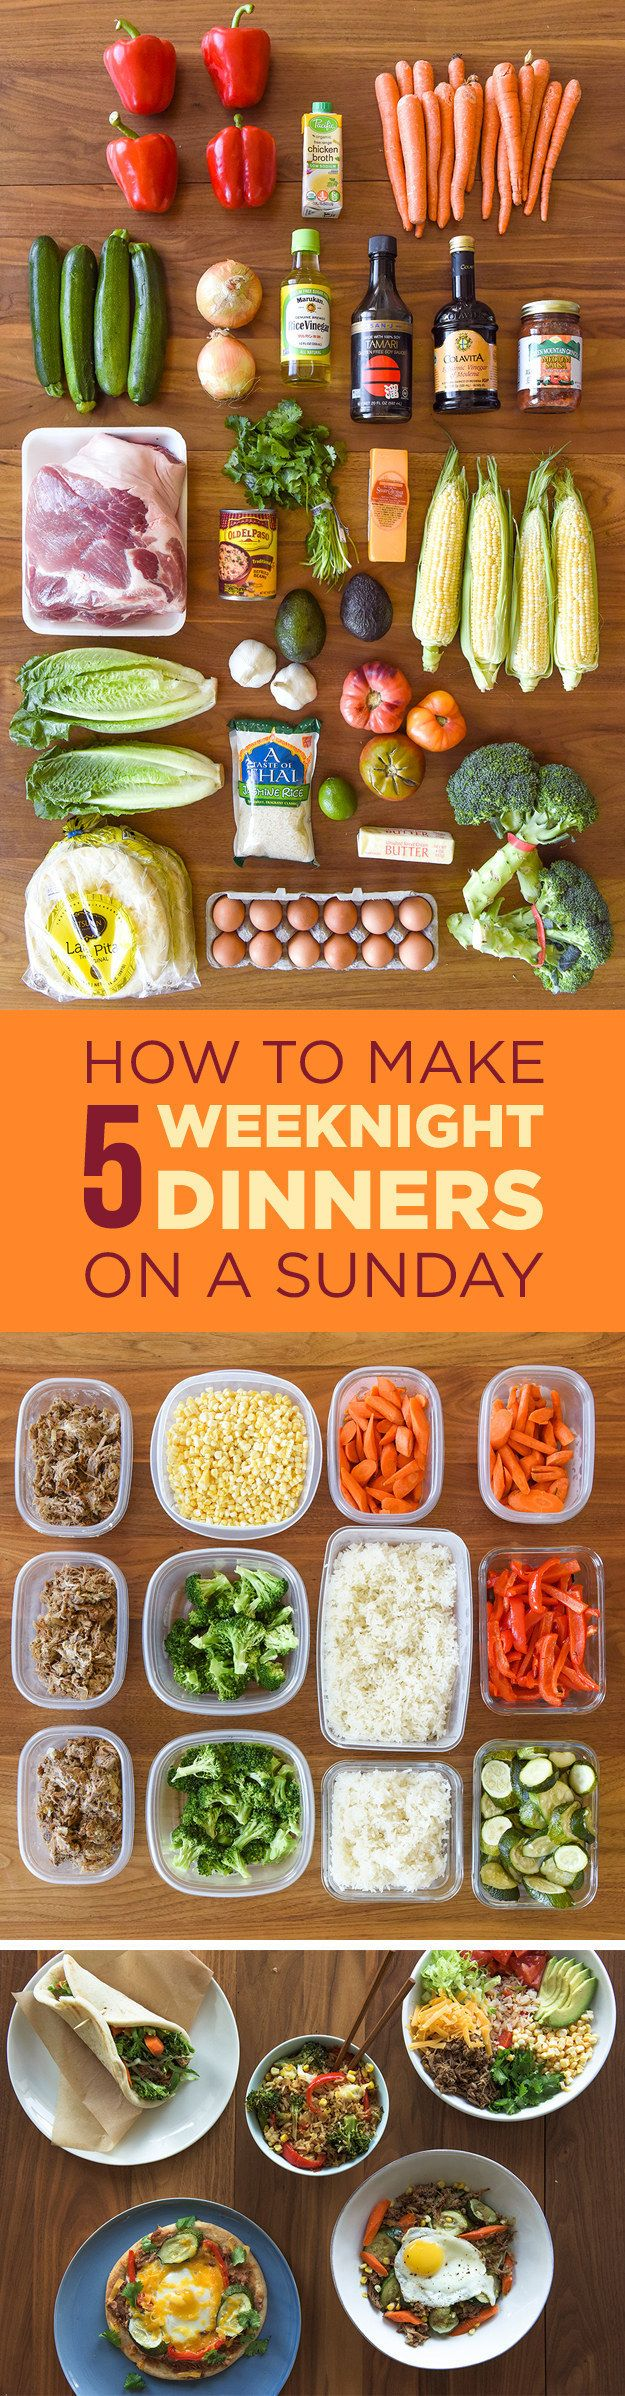 Spend just a little bit of time prepping ingredients on Sunday and make easy dinners all week.